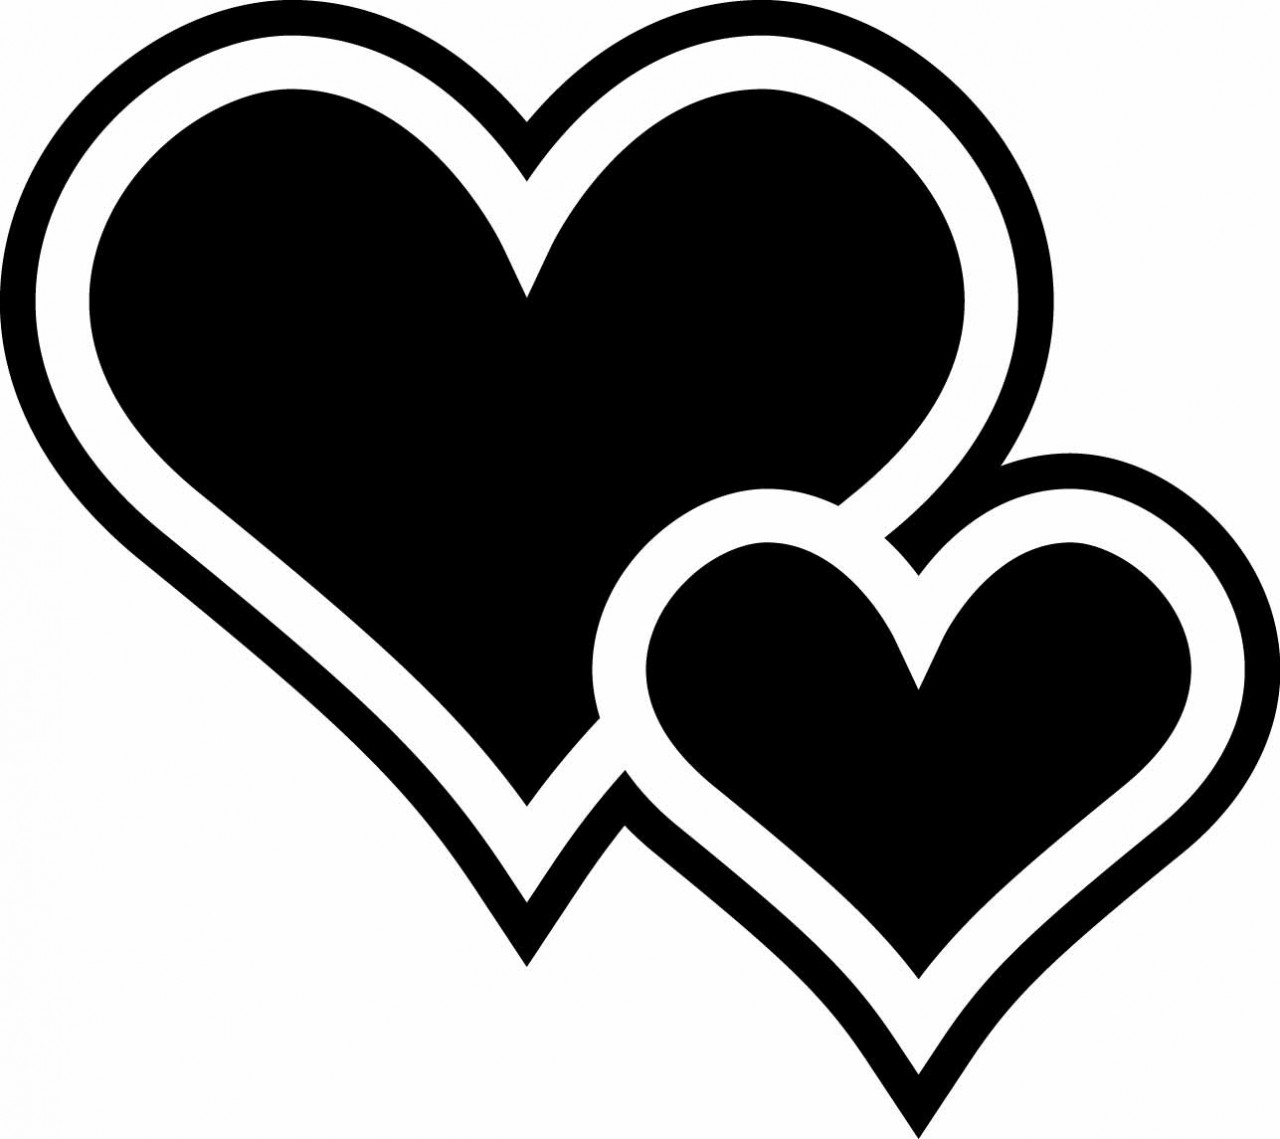 Two Hearts Black Clipart - Clipart Kid